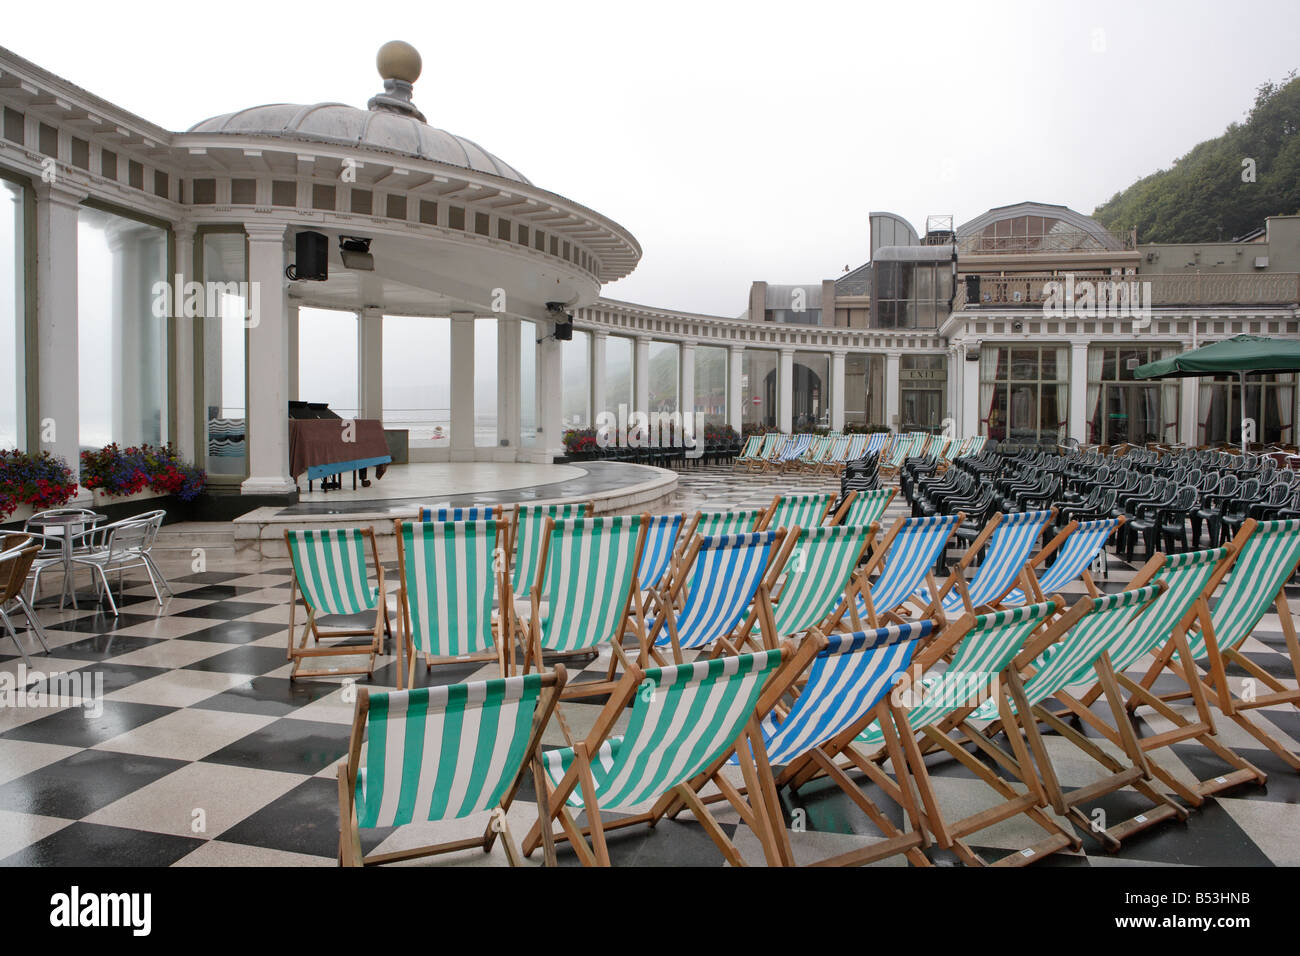 deckchairs and seating at the Spa Scarborough - Stock Image